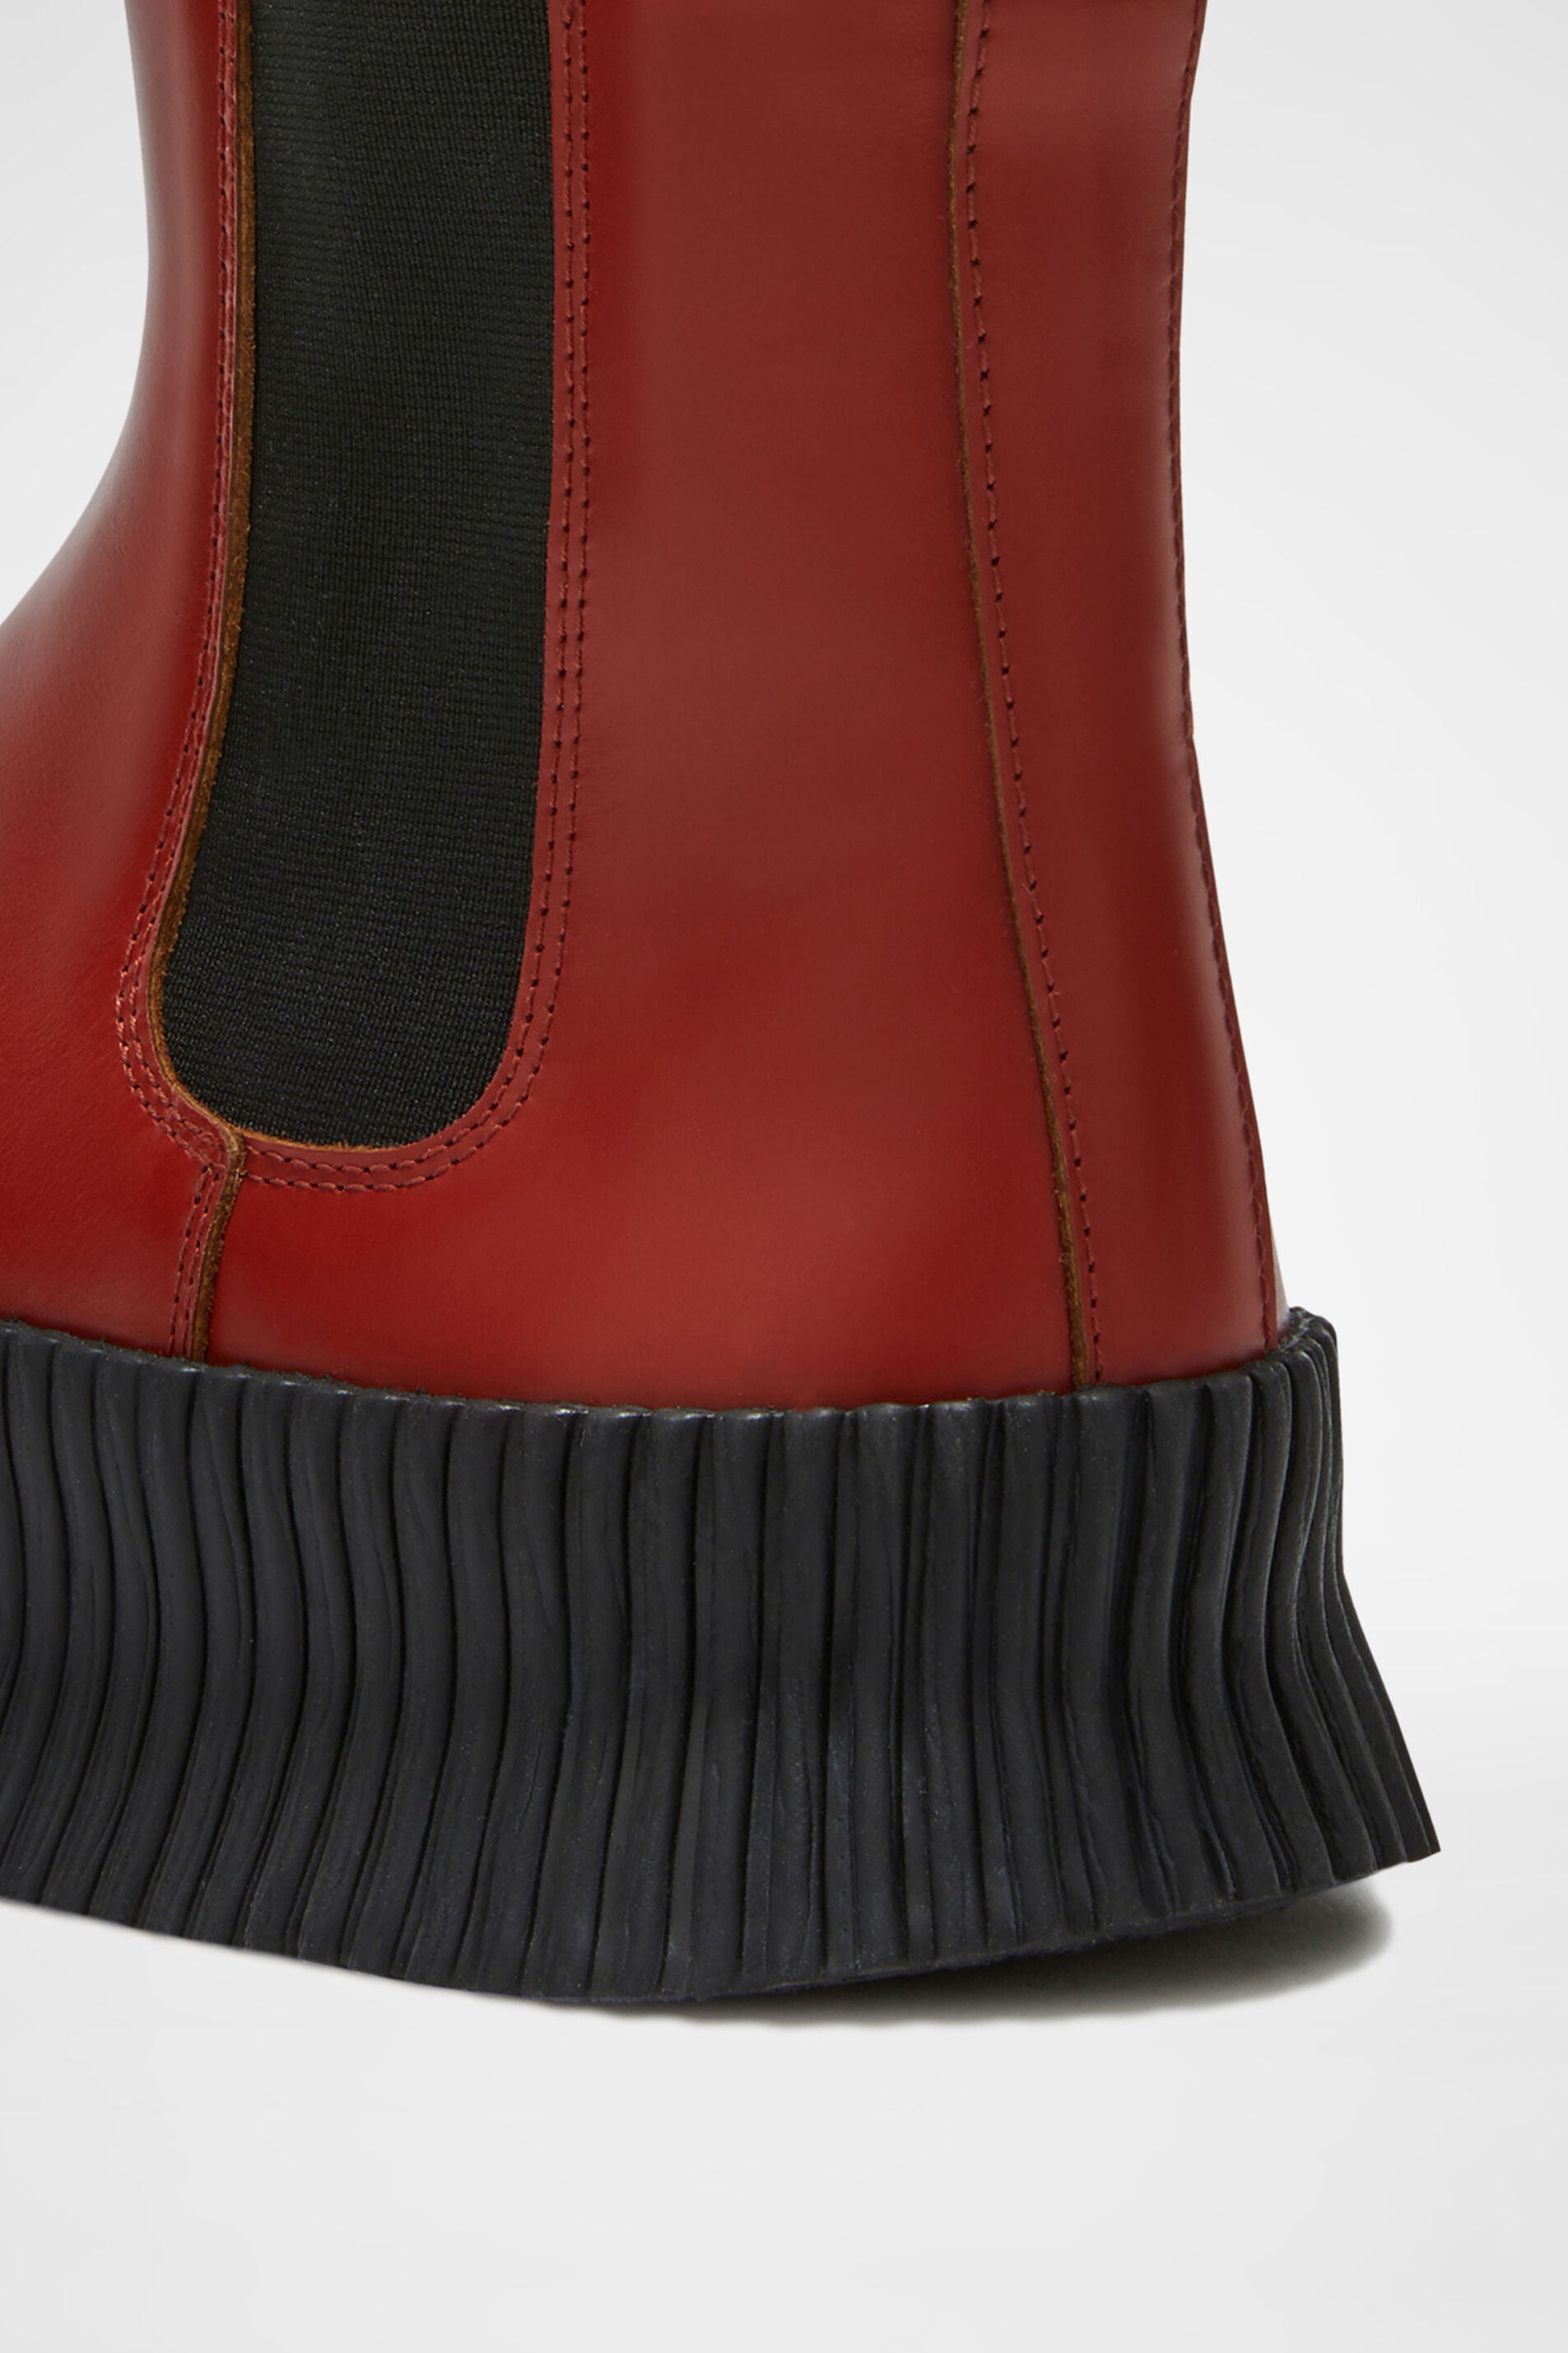 Boots, red, large